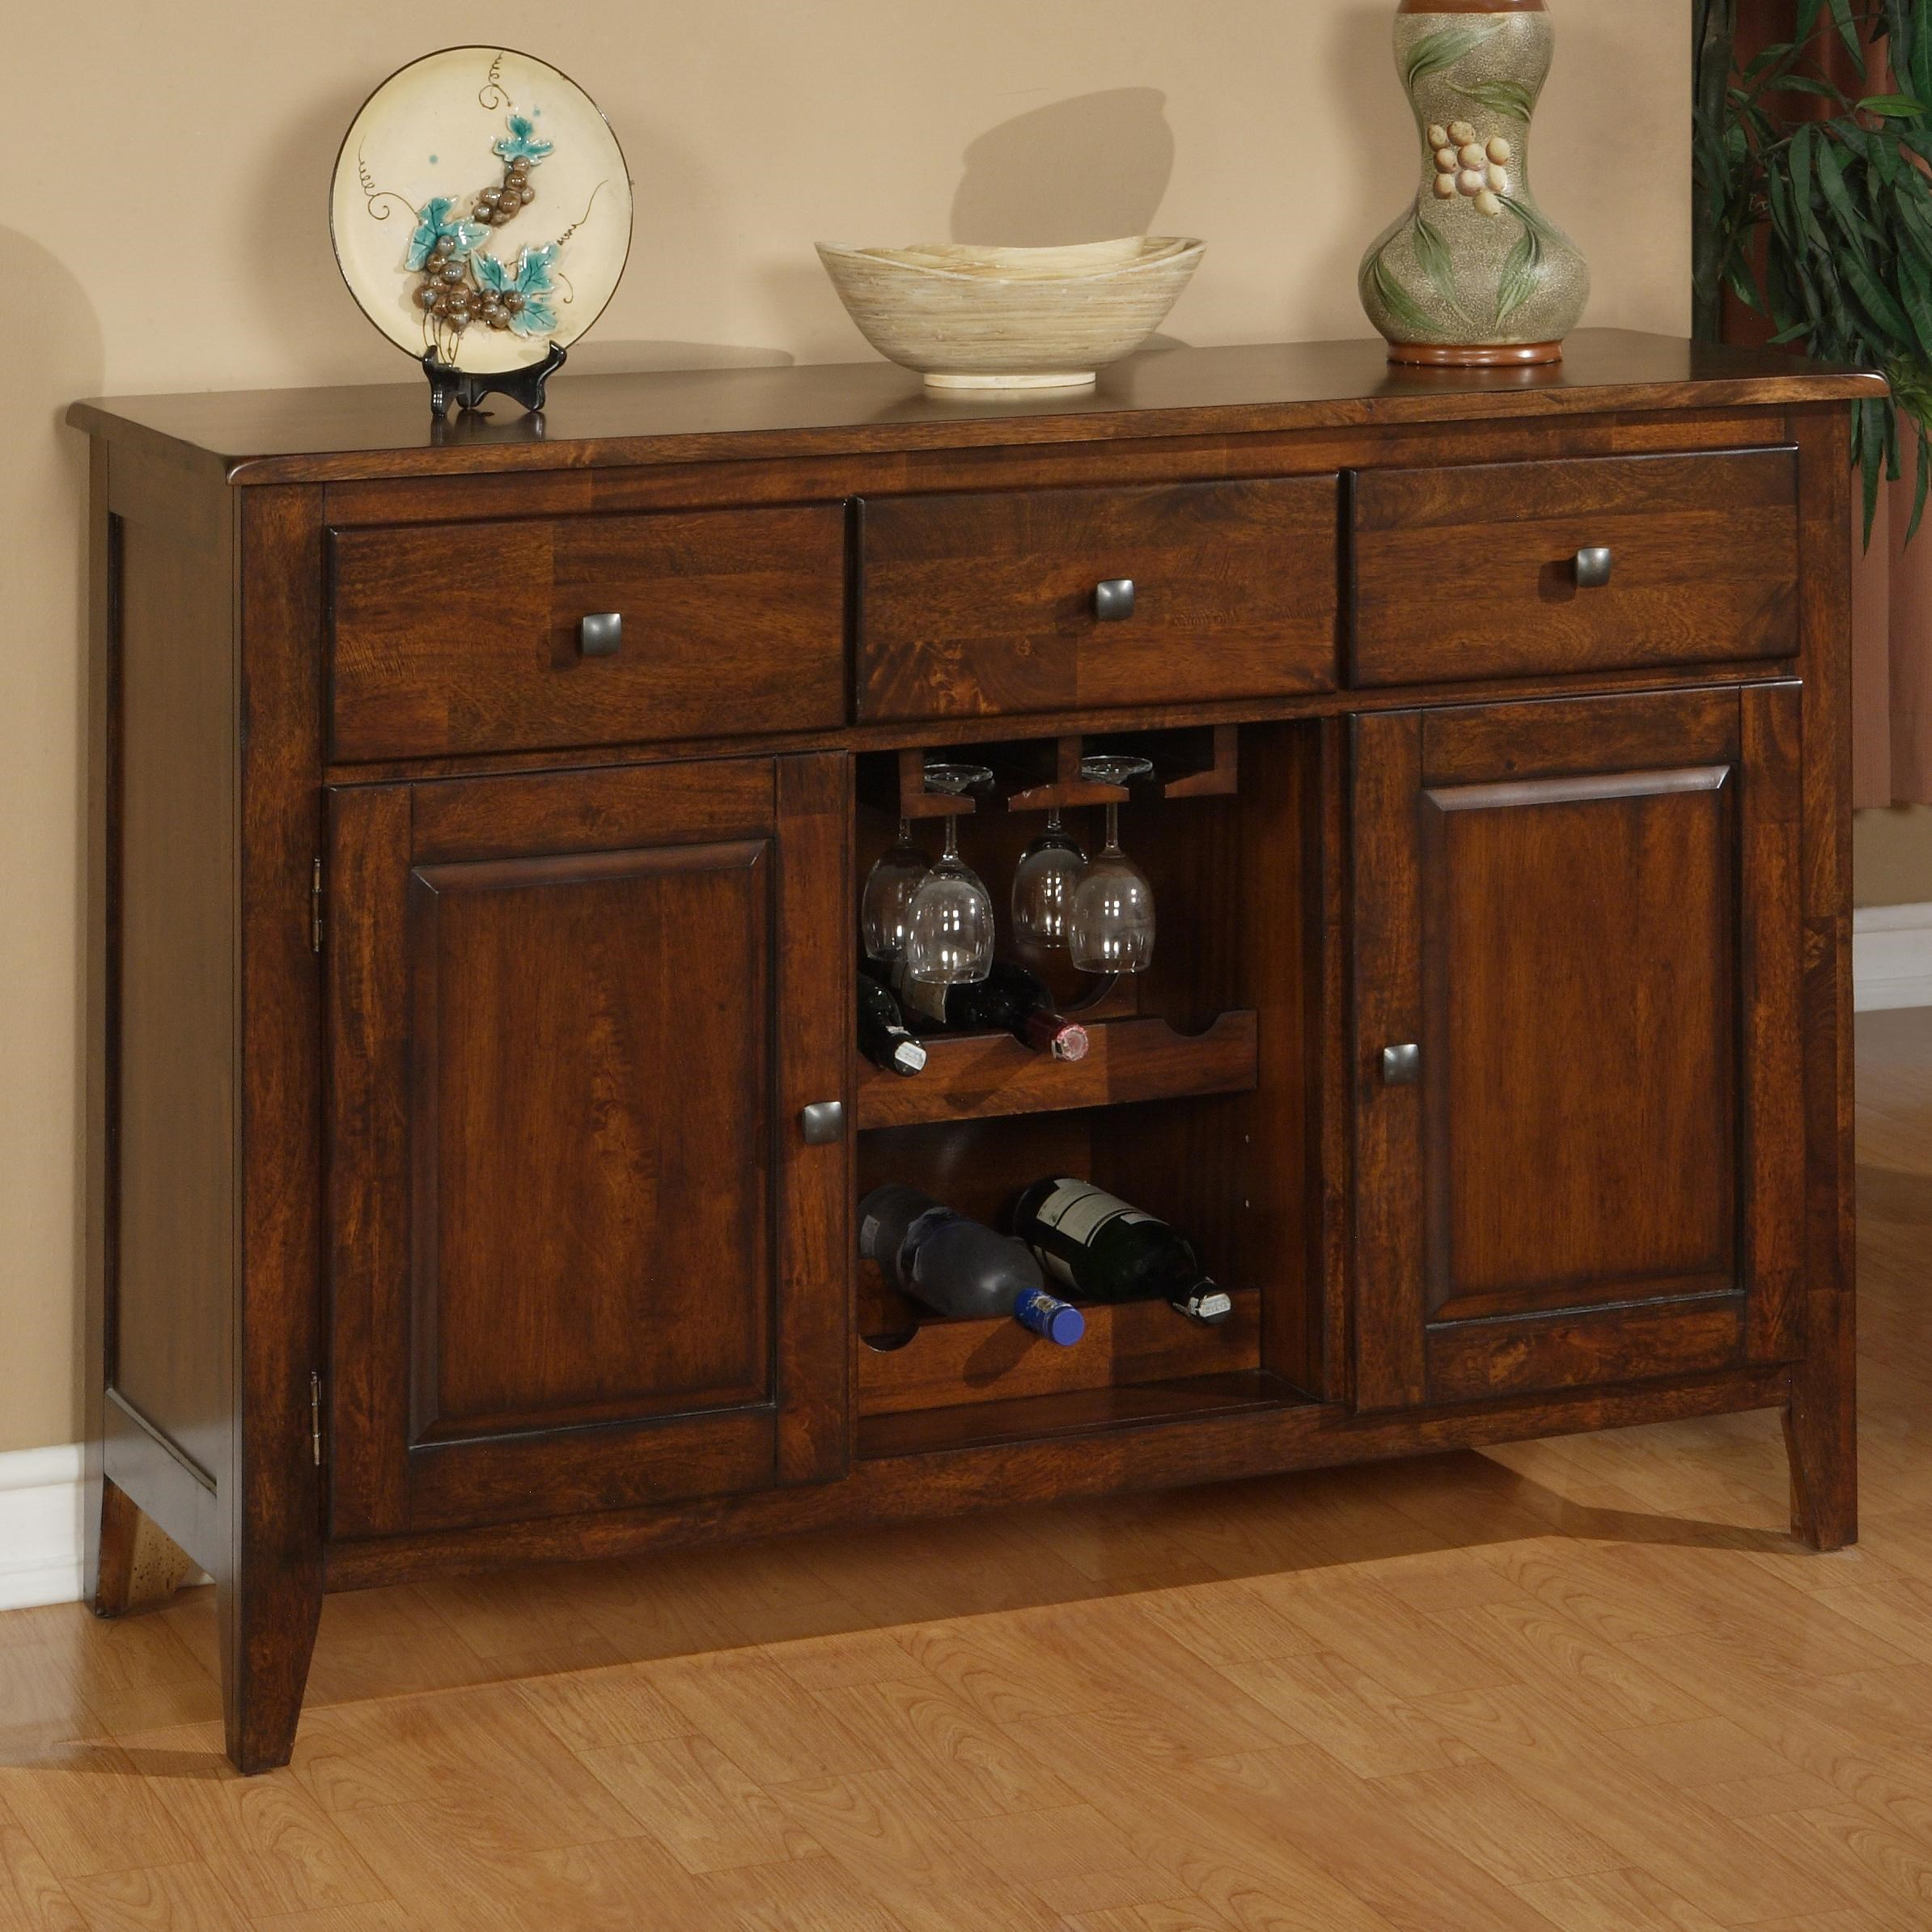 Home Dining Room Furniture Serving Table Warehouse M 1279 Sideboard.  Warehouse M 1279Sideboard ...